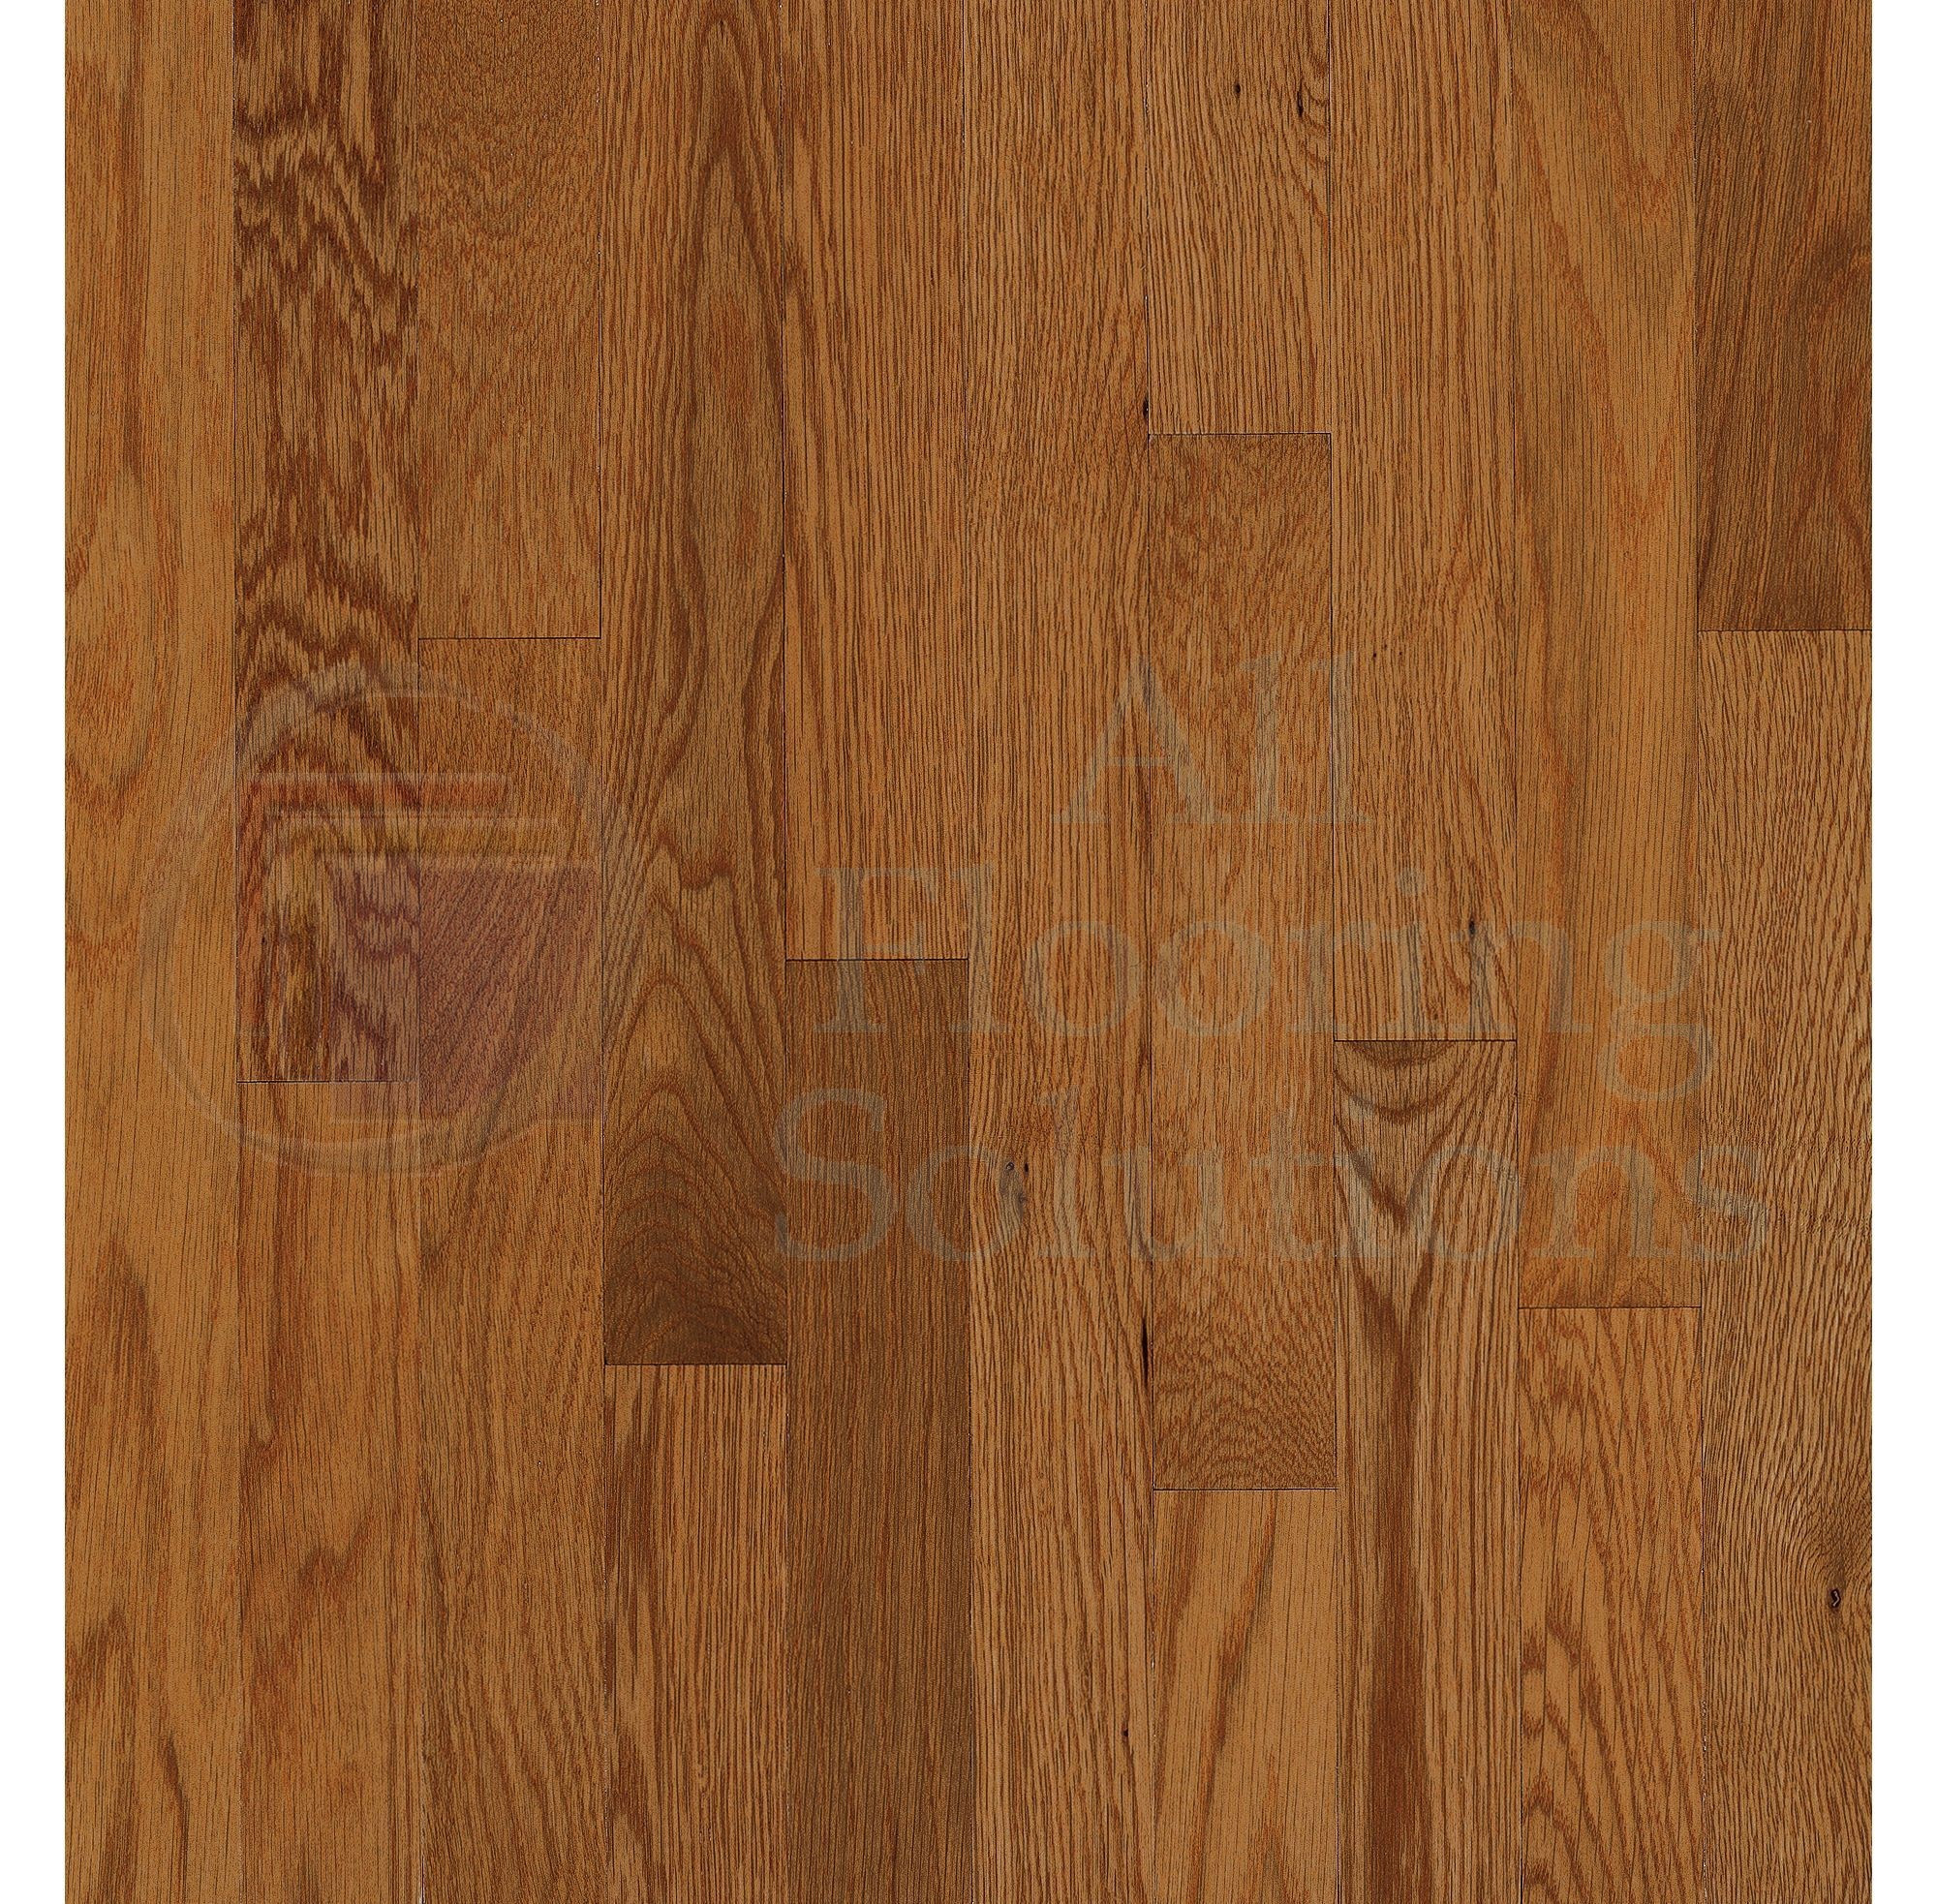 bruce hardwood flooring butterscotch color of red oak natural hardwood flooring preverco of red oak flooring with hardwood flooring tacoma wood floors for red oak flooring